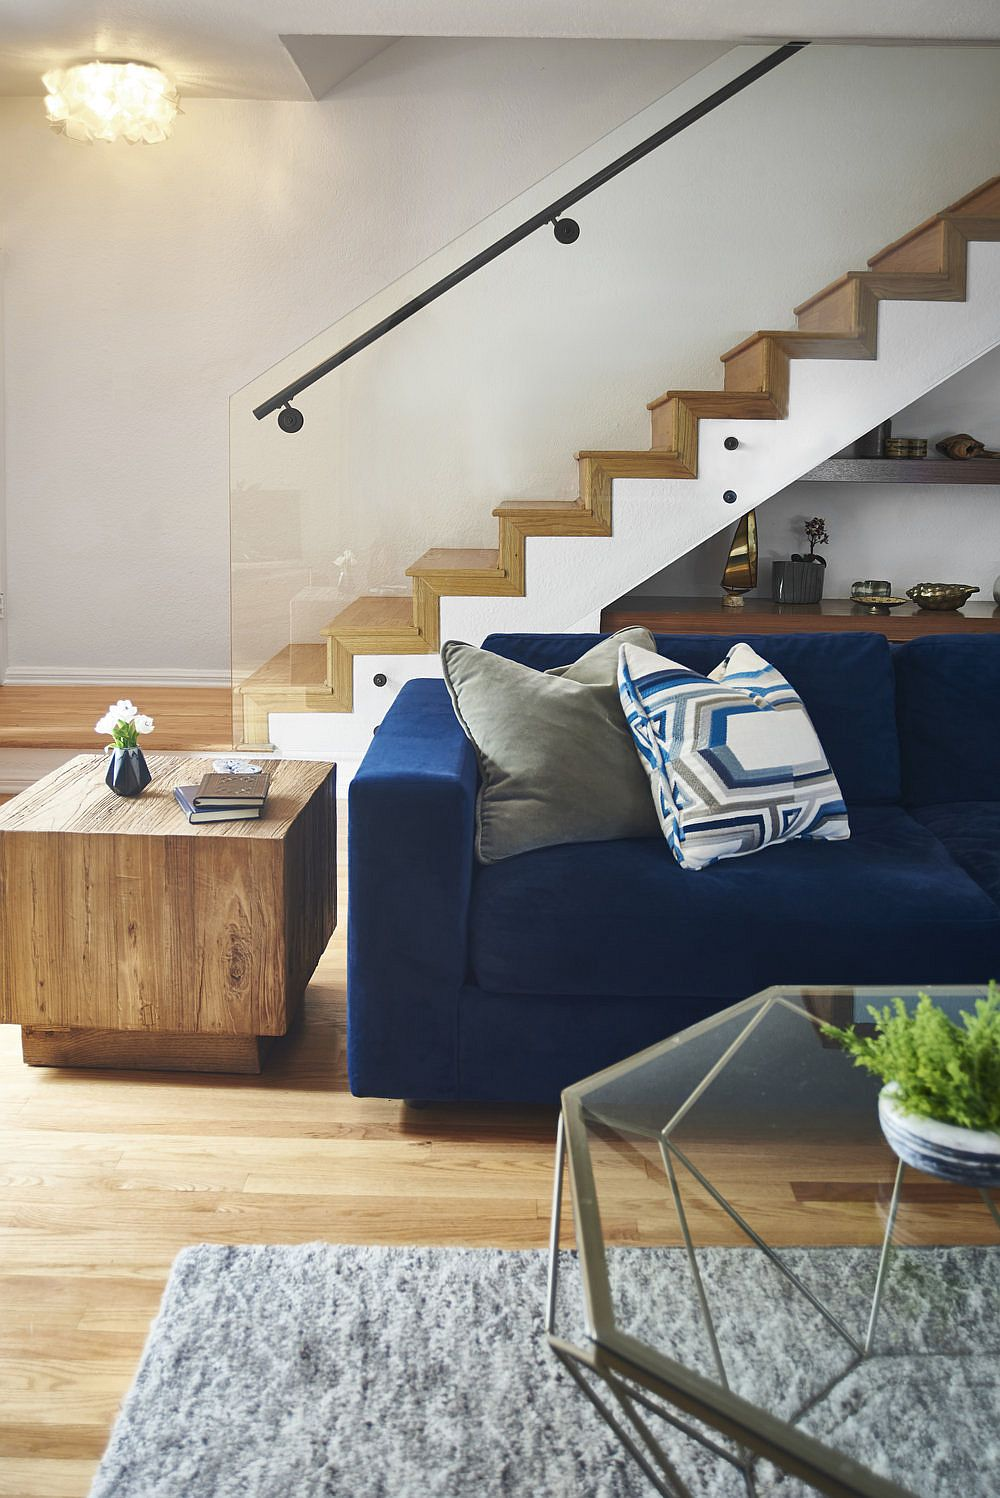 Wooden staircase creates a stylish and striking backdrop for the living room